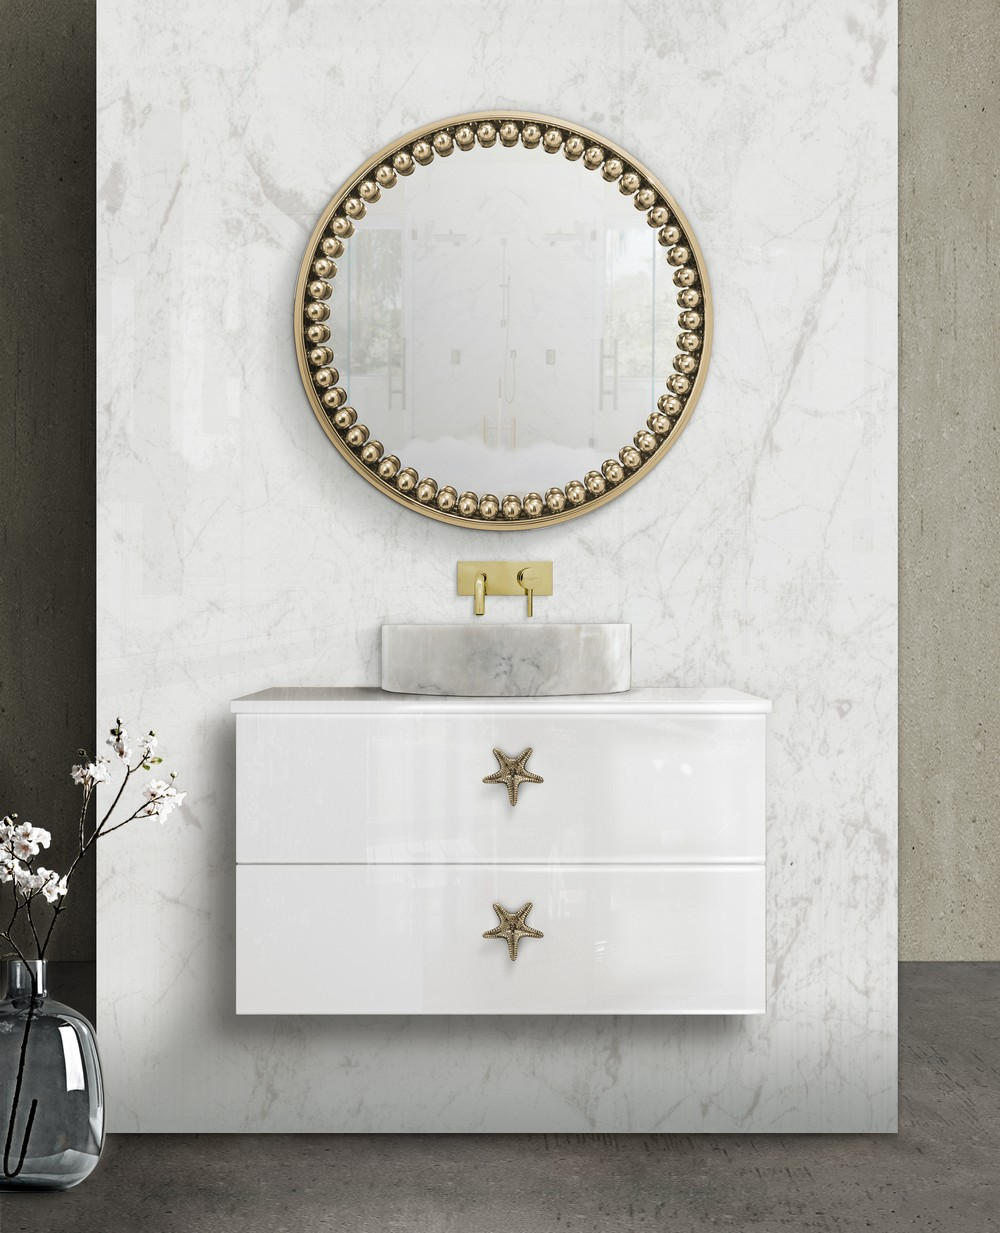 Bathroom Design Ideas Enhance Your Space with Jewelry Hardware_4 bathroom design ideas Bathroom Design Ideas: Enhance Your Space with Jewelry Hardware Bathroom Design Ideas Enhance Your Space with Jewelry Hardware 4